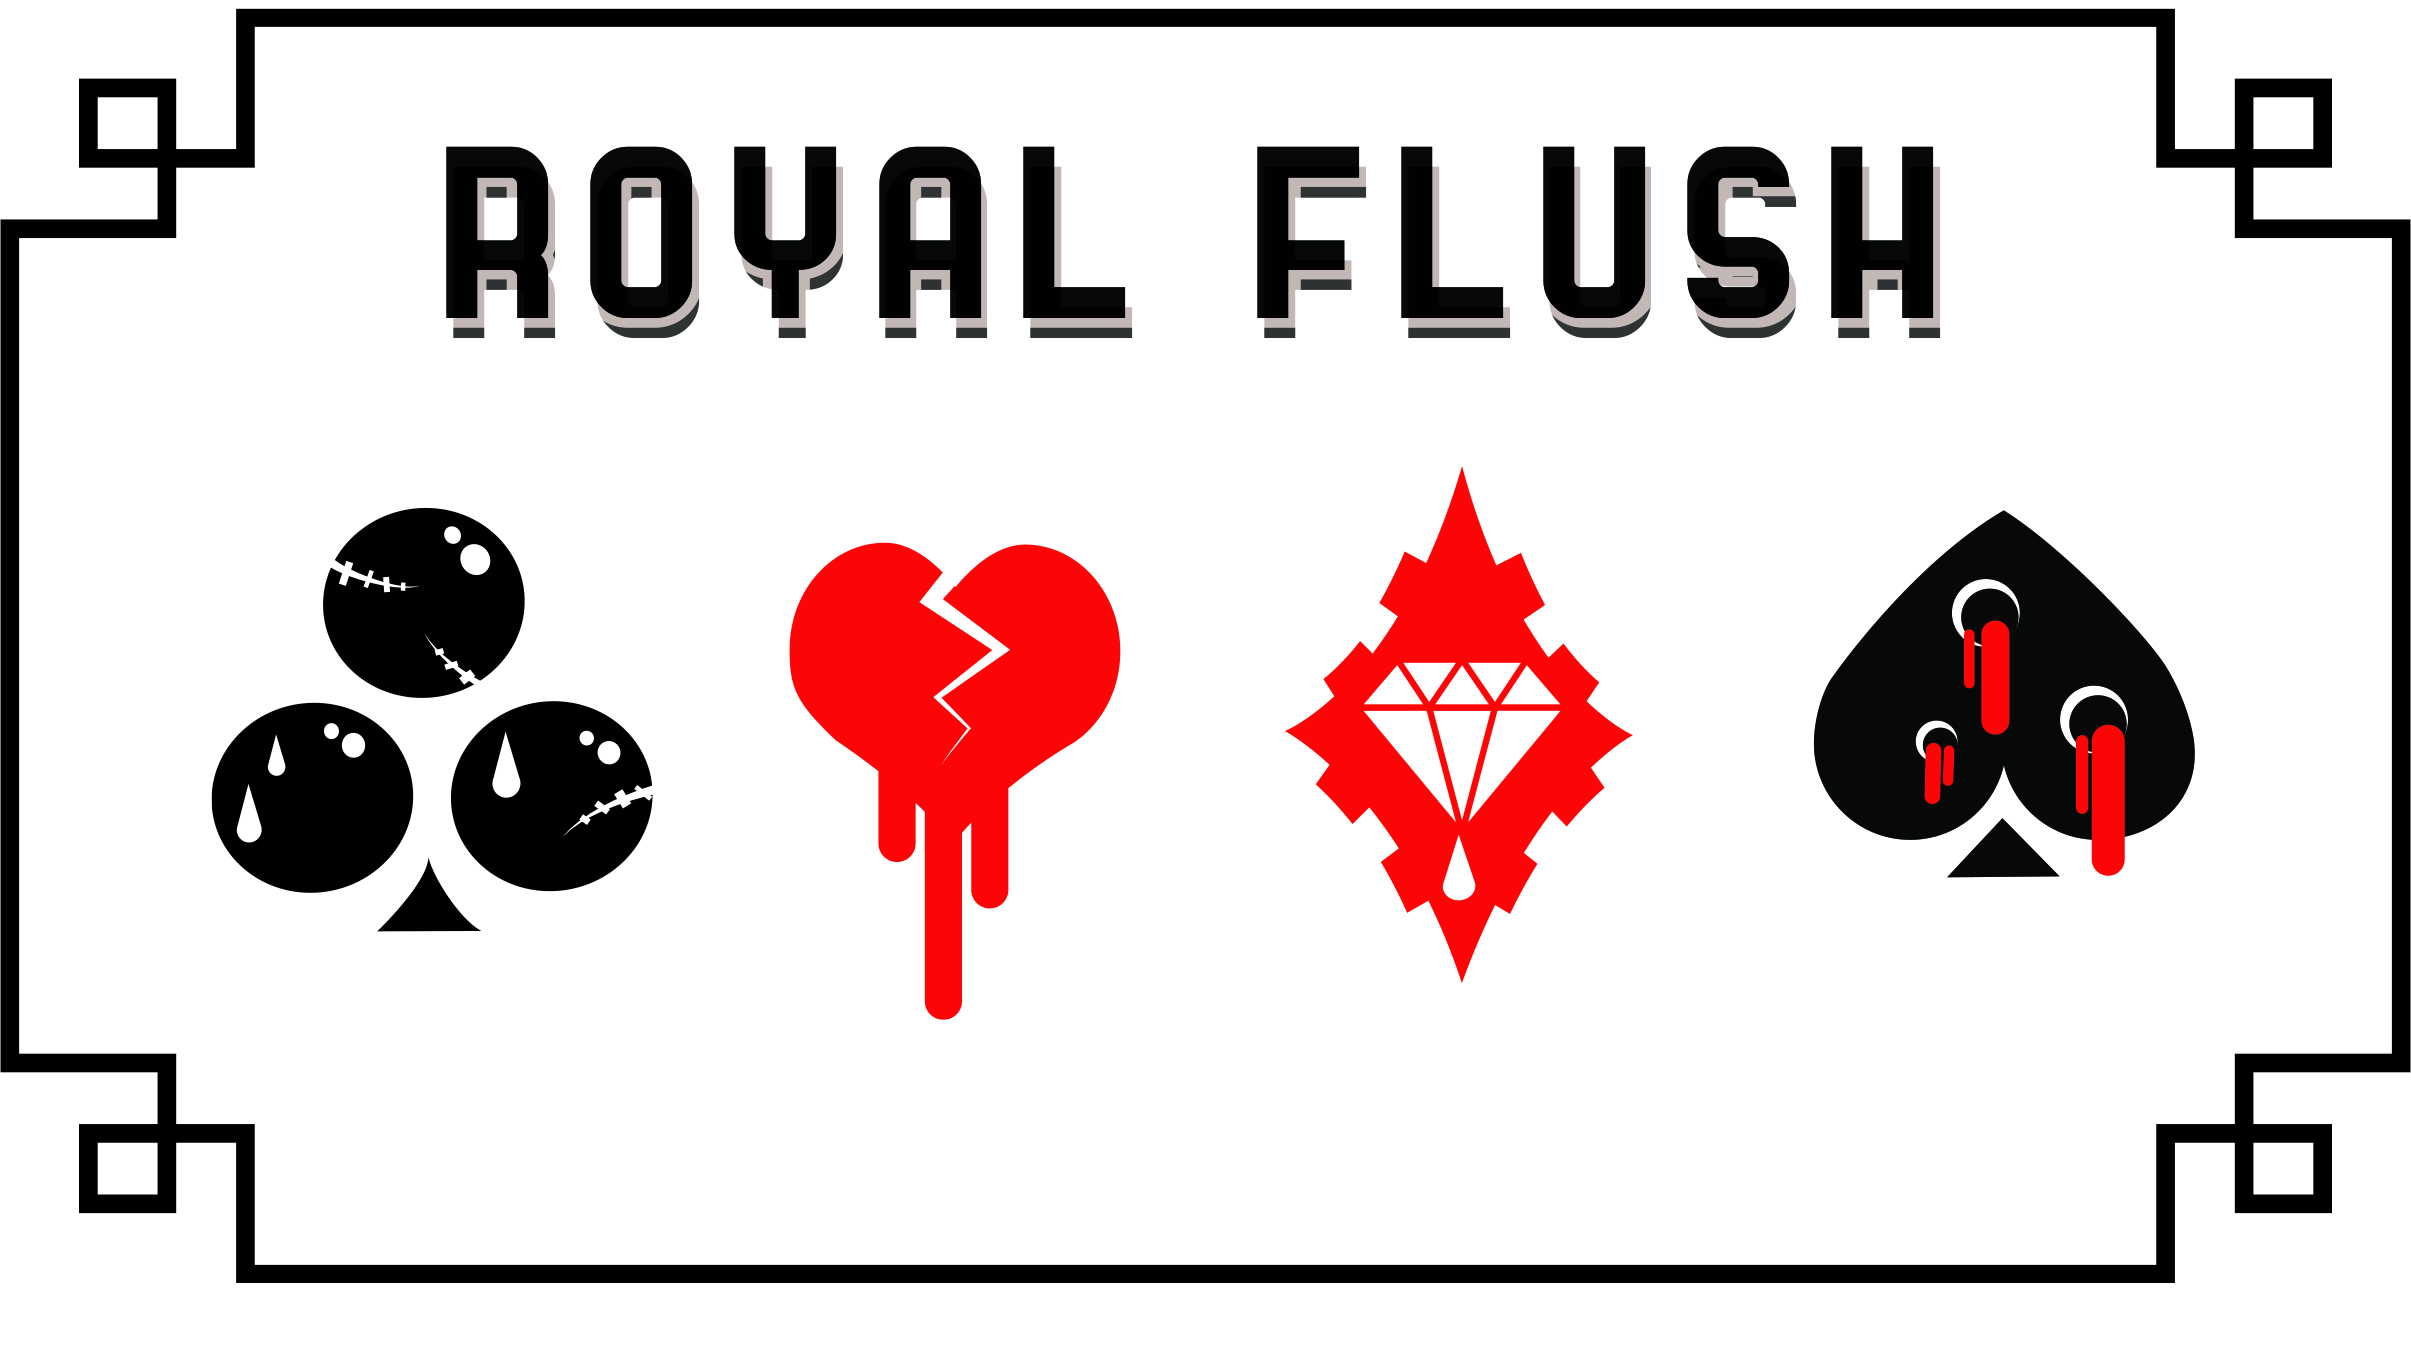 ROYAL FLUSHtitle2